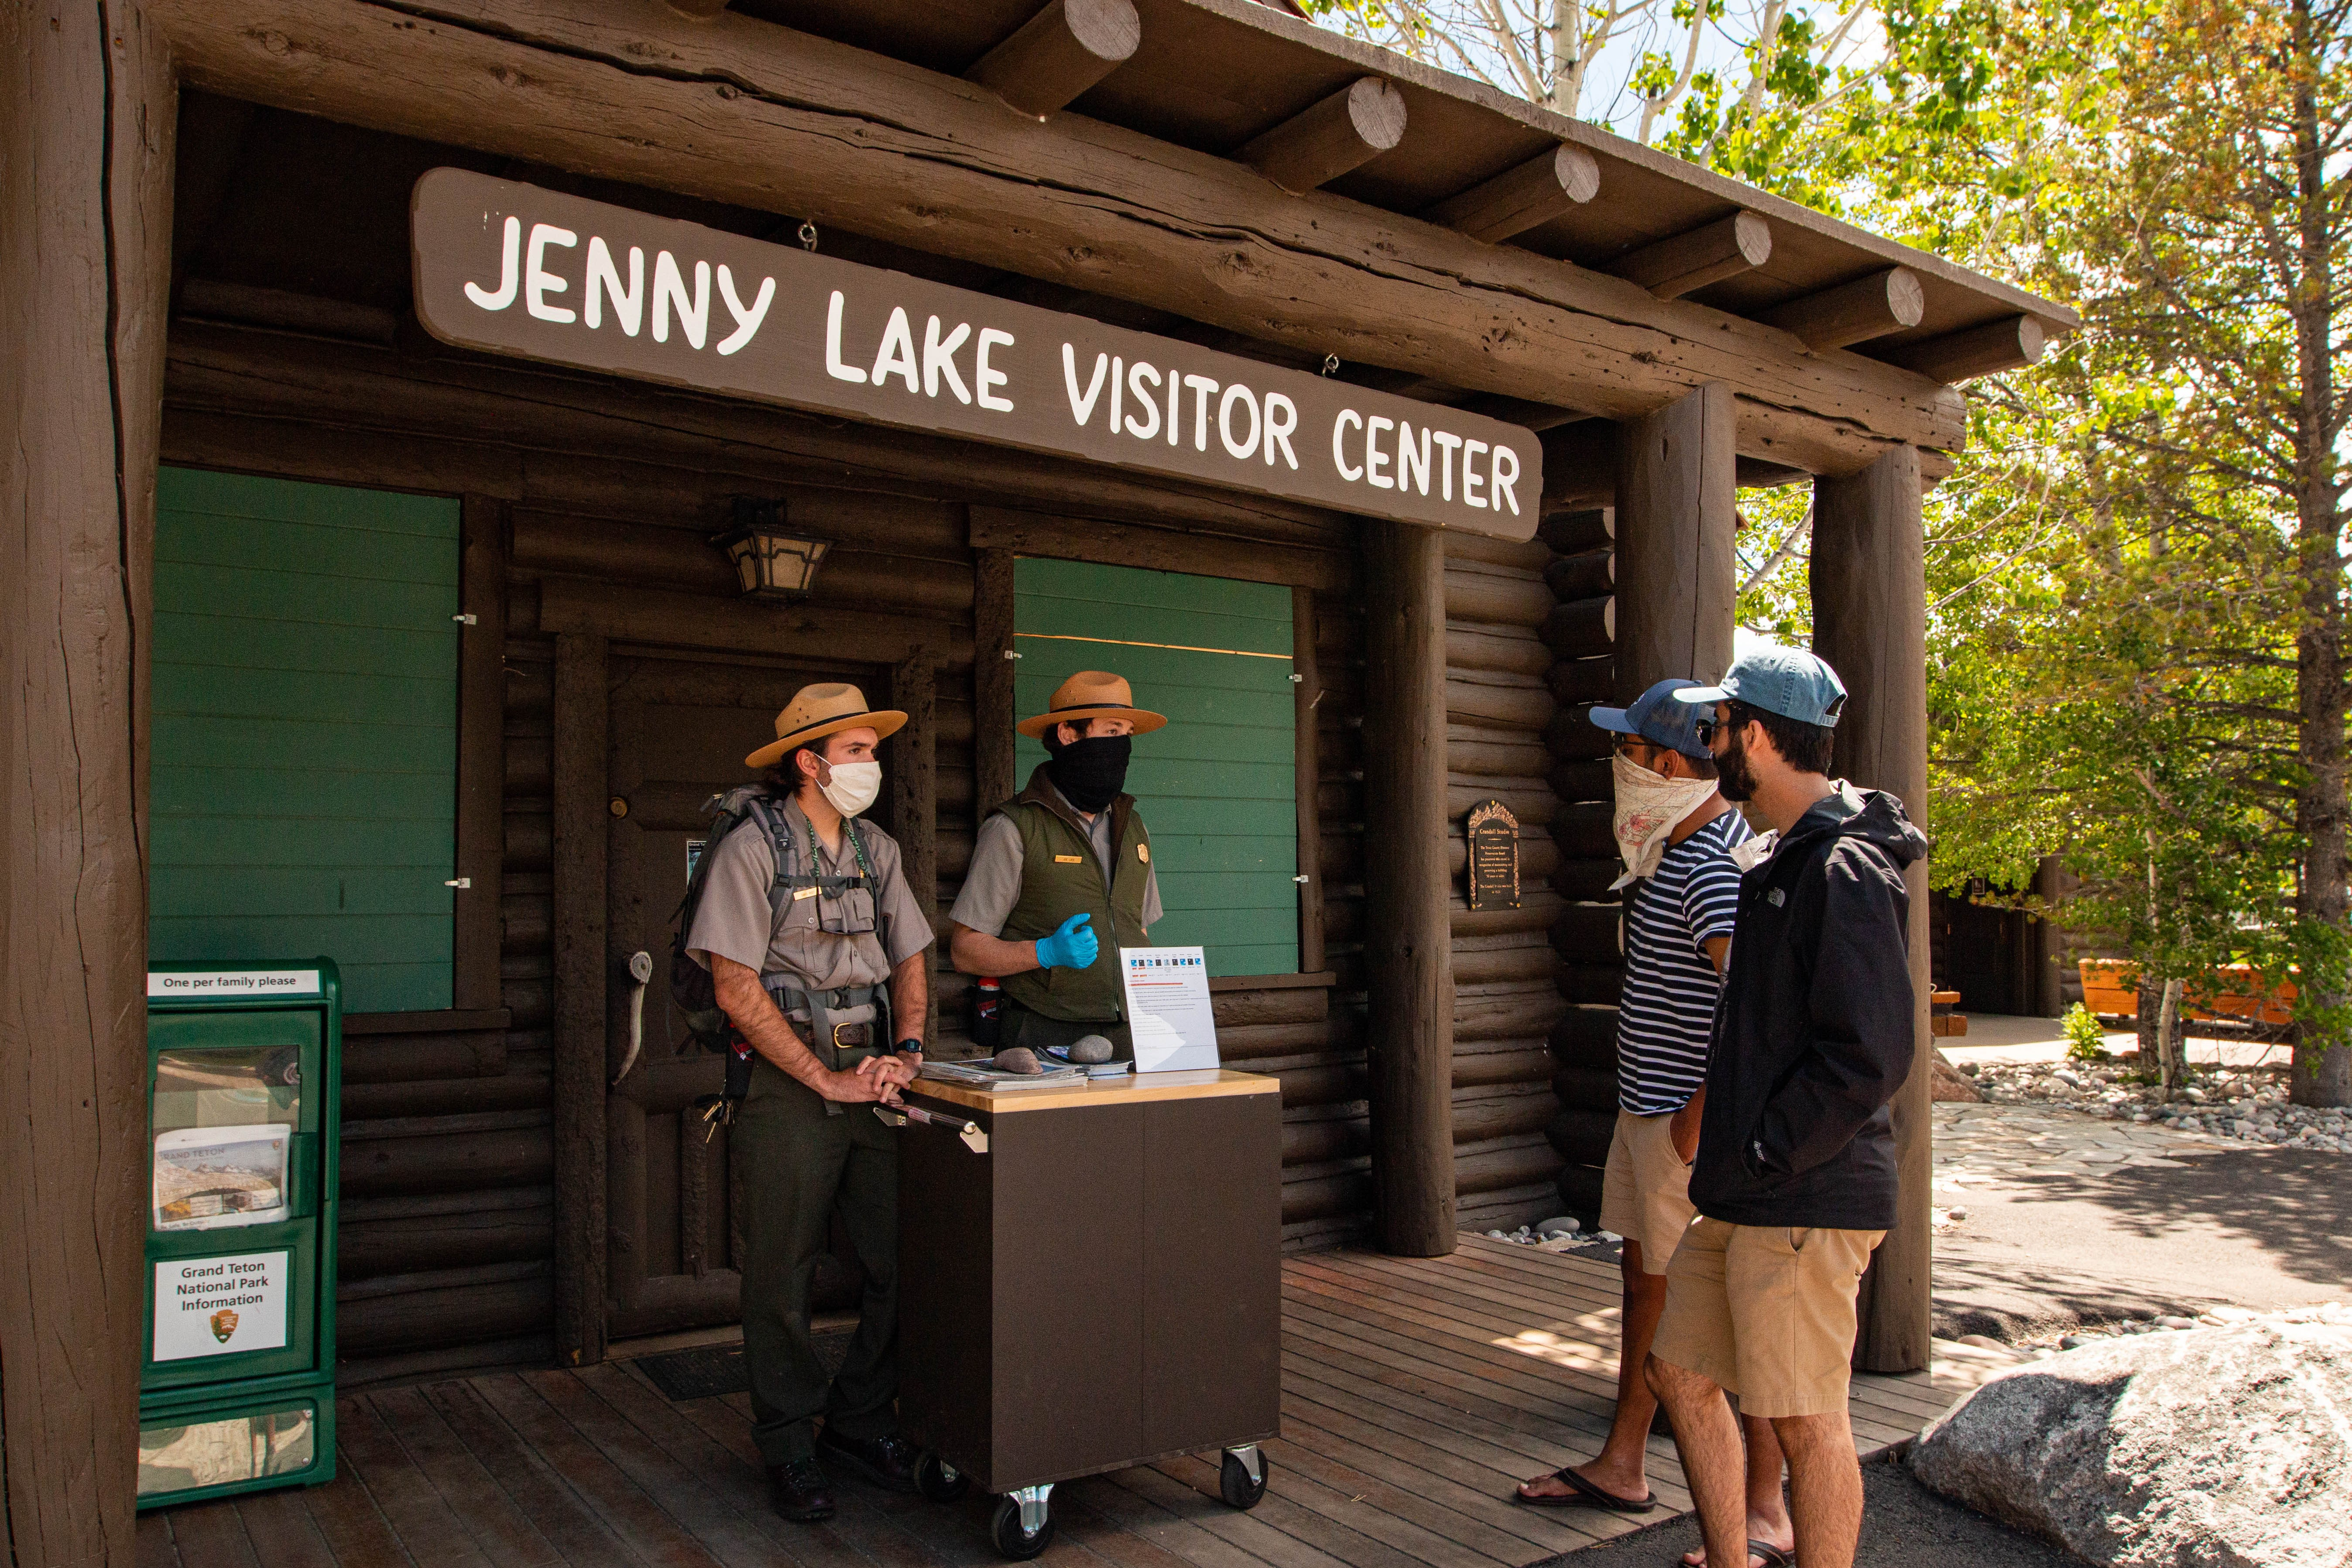 """Park rangers and visitors wearing masks talking on the porch of a building marked, """"Jenny Lake Visitor Center"""""""